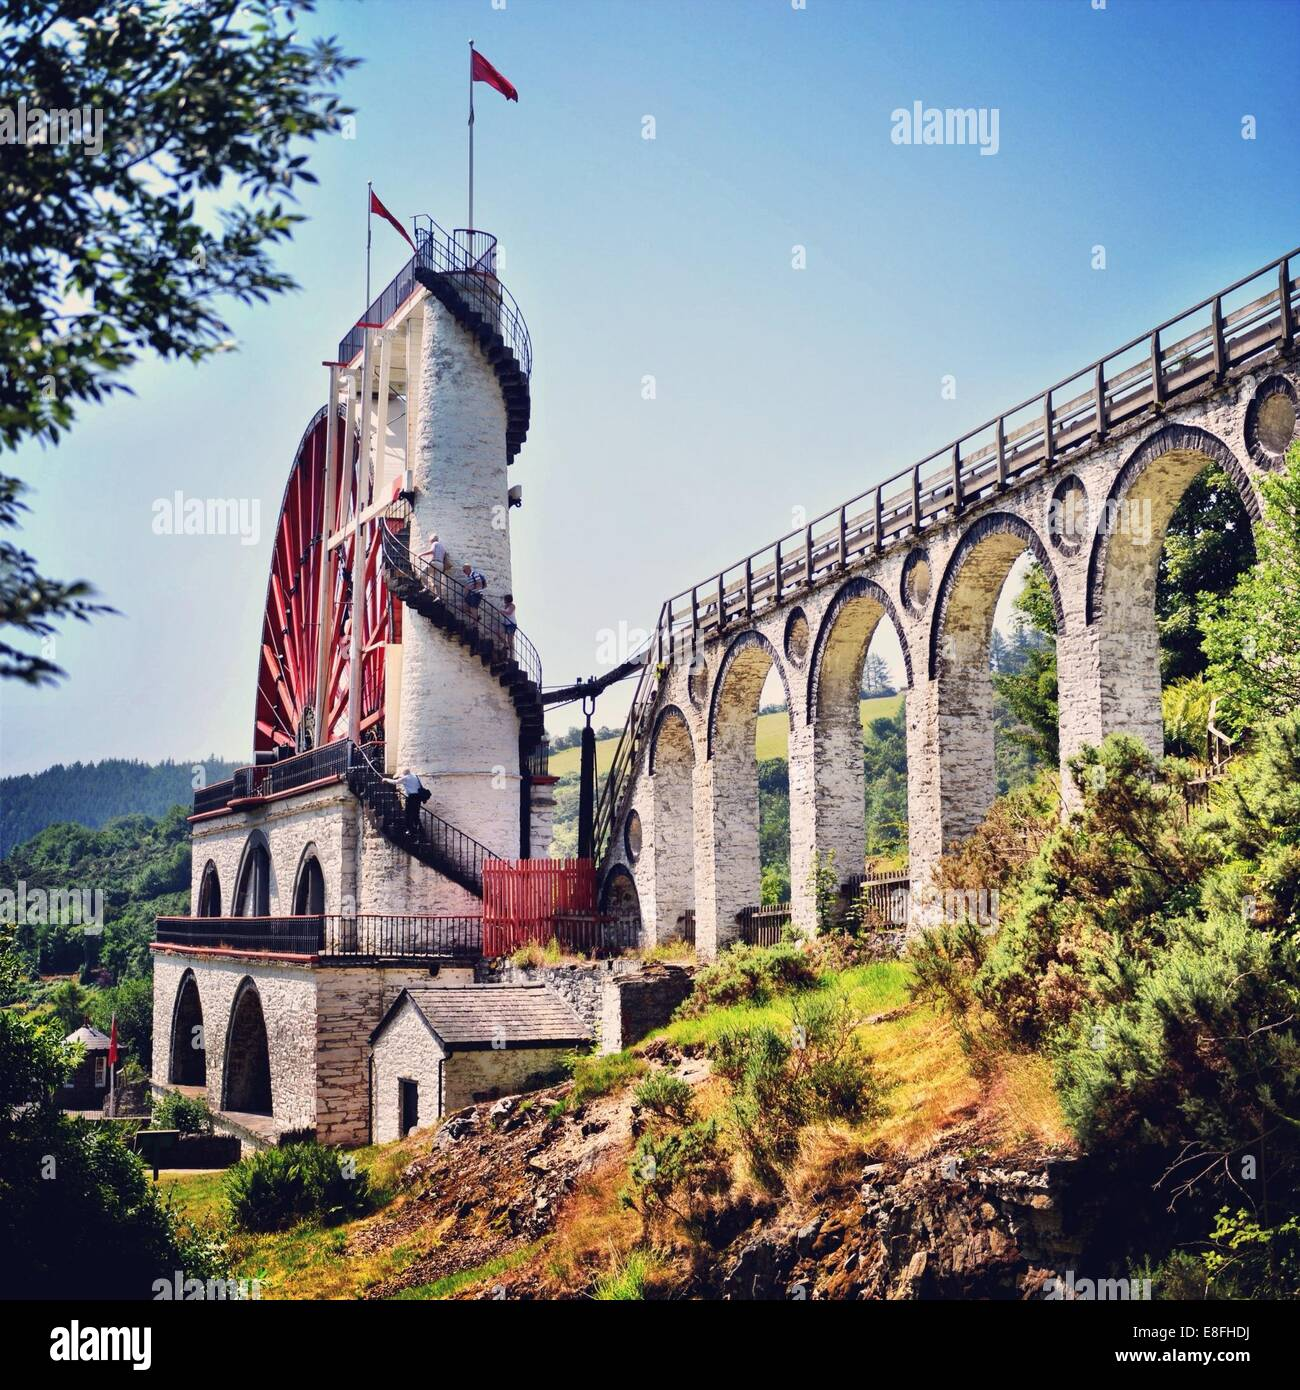 Isle of Man, Laxey, Laxey Wheel - Stock Image